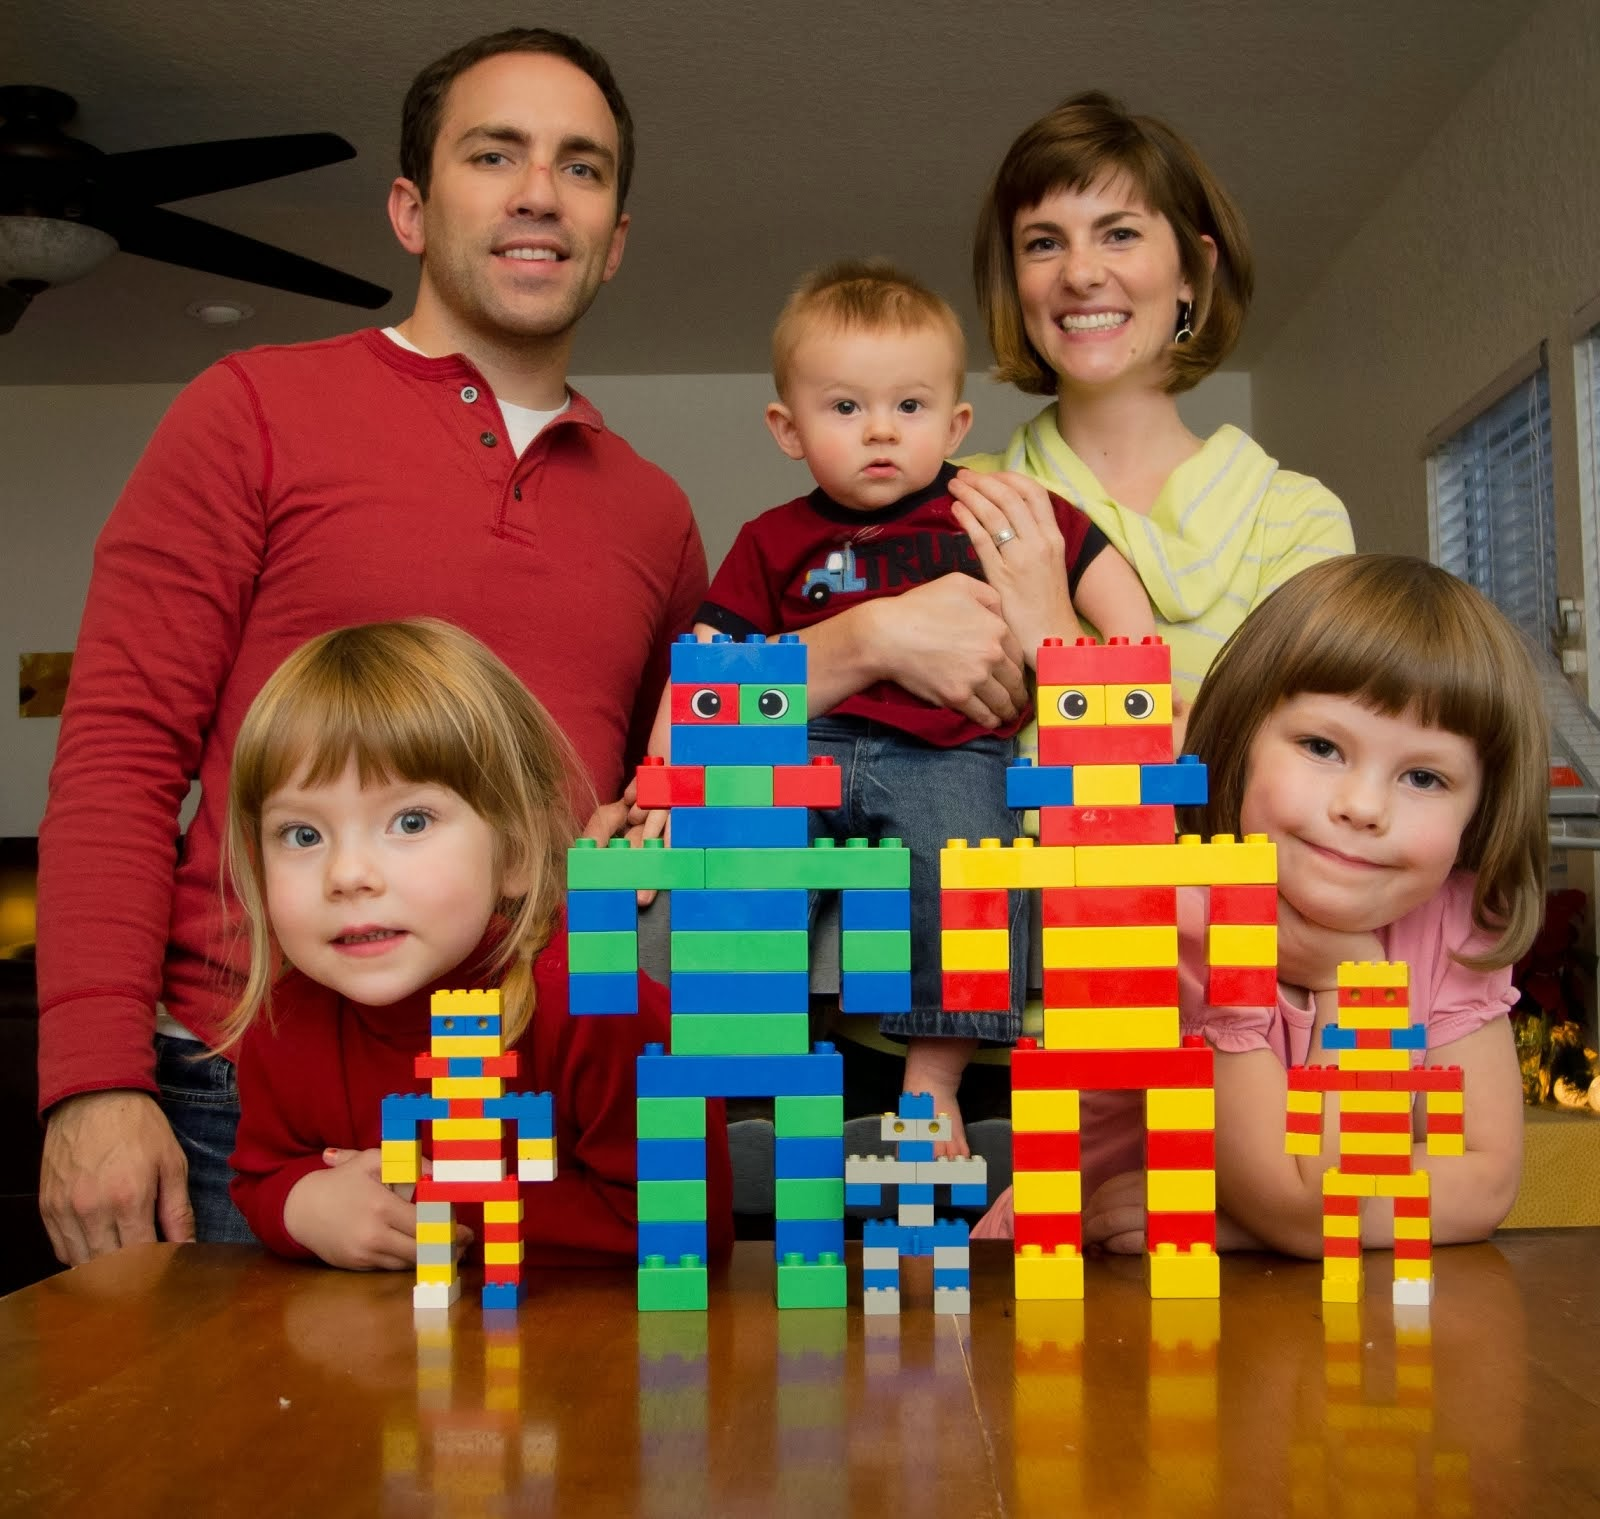 Lego Family, What?